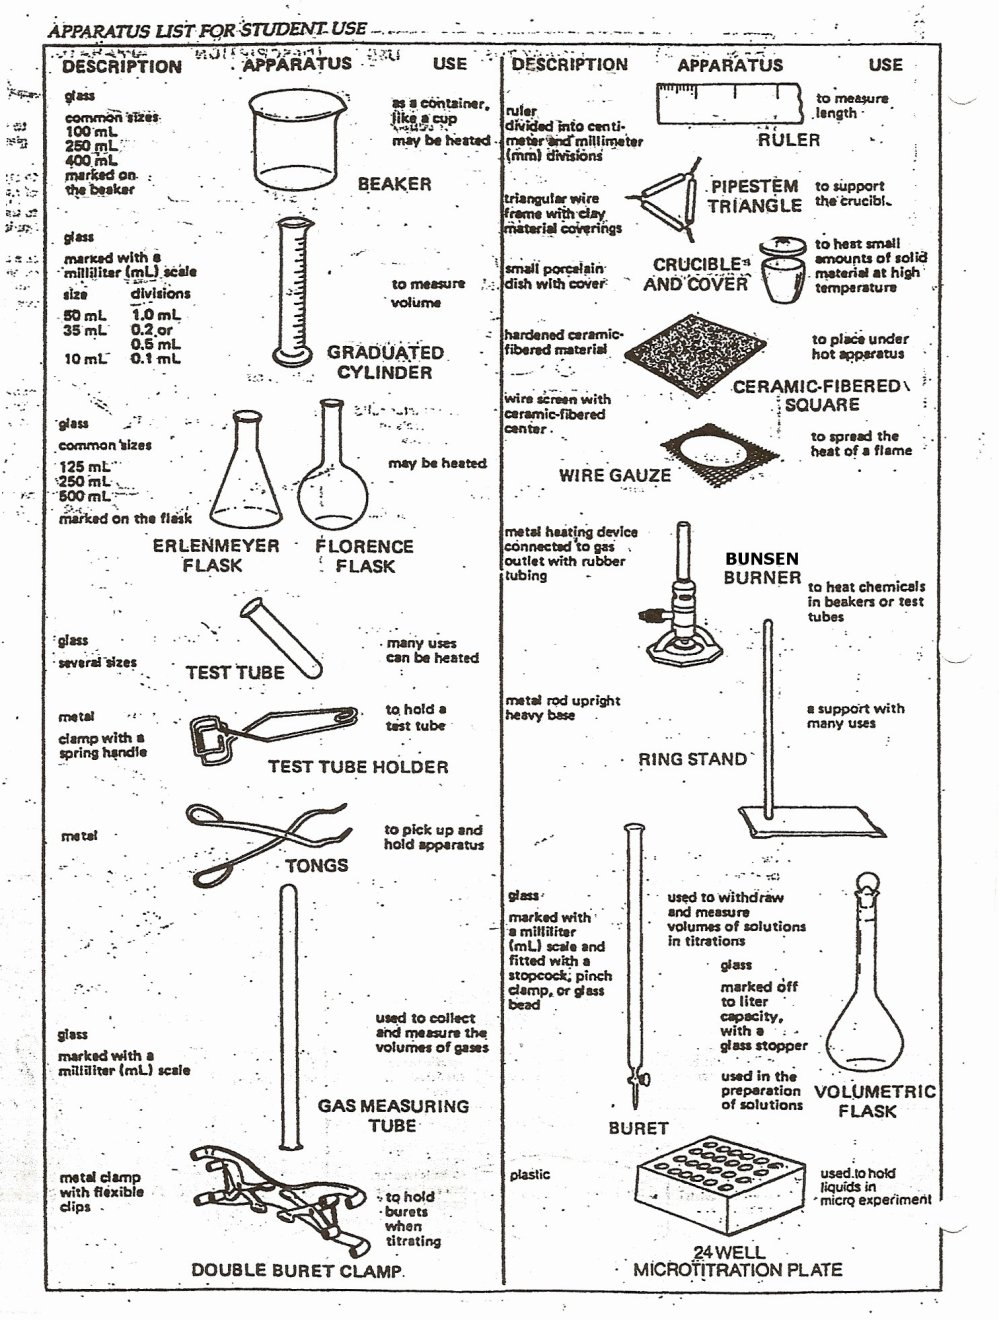 medium resolution of 6th Grade Science Lab Equipment Worksheet   Printable Worksheets and  Activities for Teachers